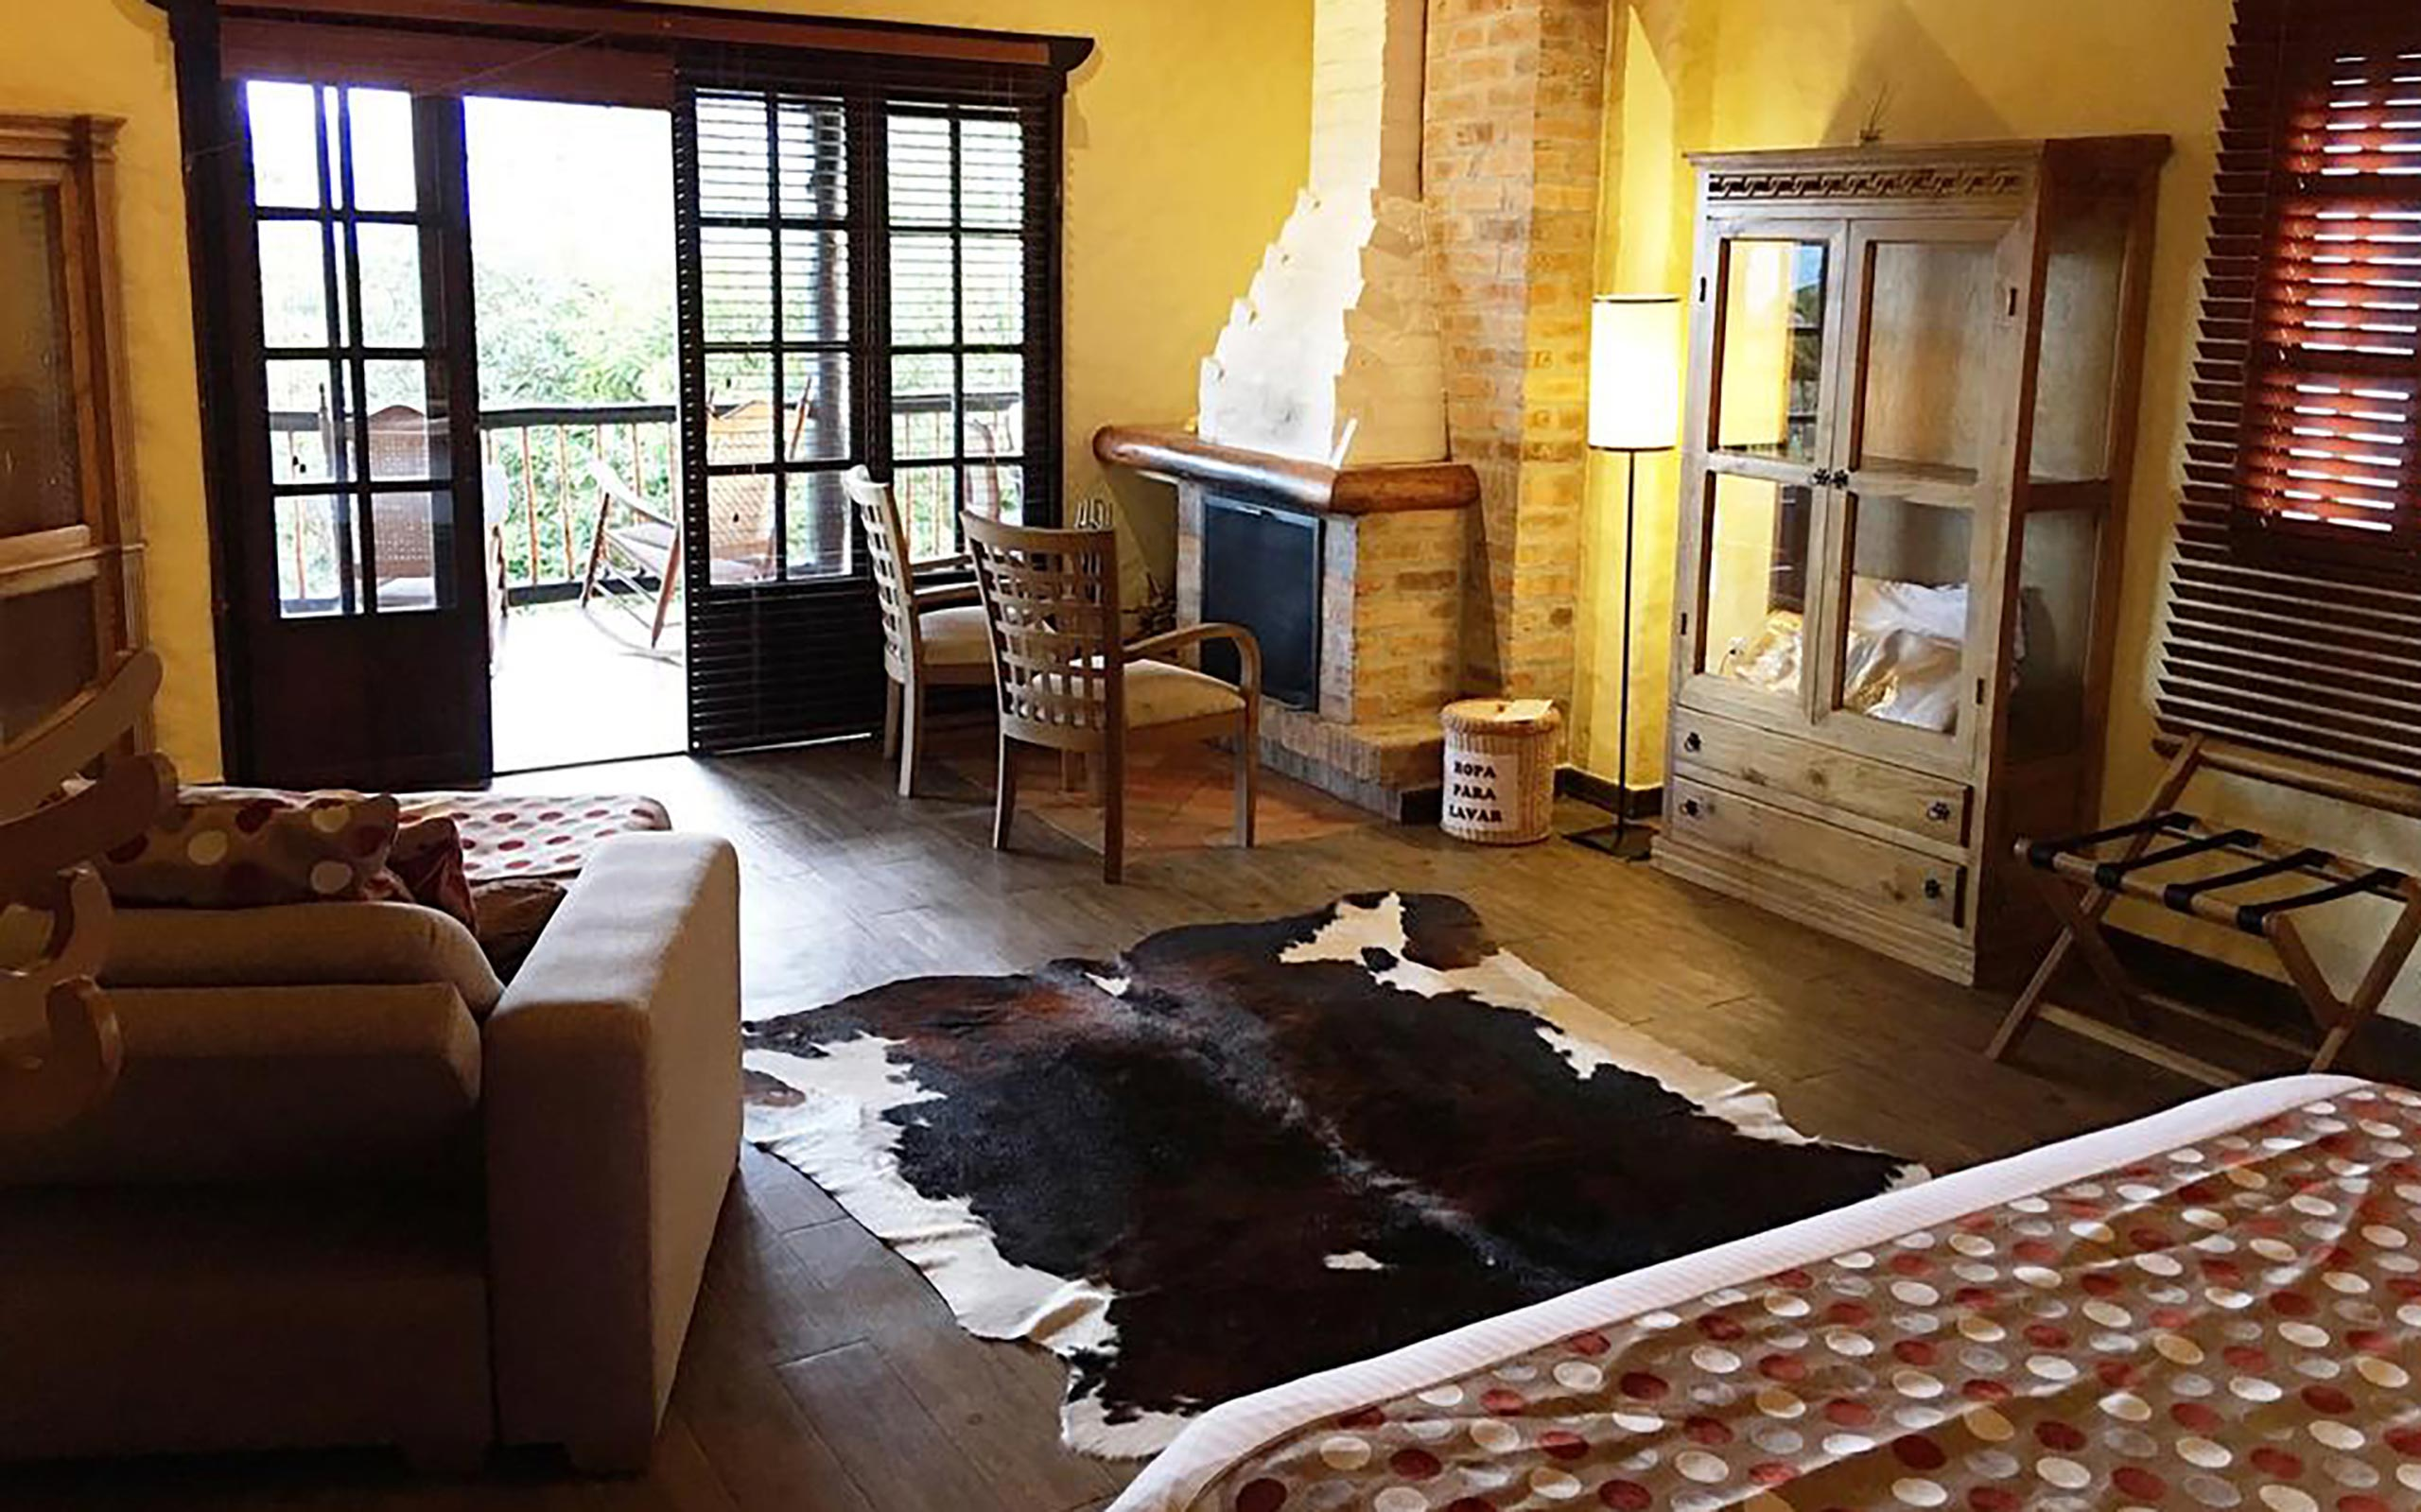 A guest room at hotel Monasterio with a brick fire place, wood armoire, on the floor an animal skinned rug, and a brown chair